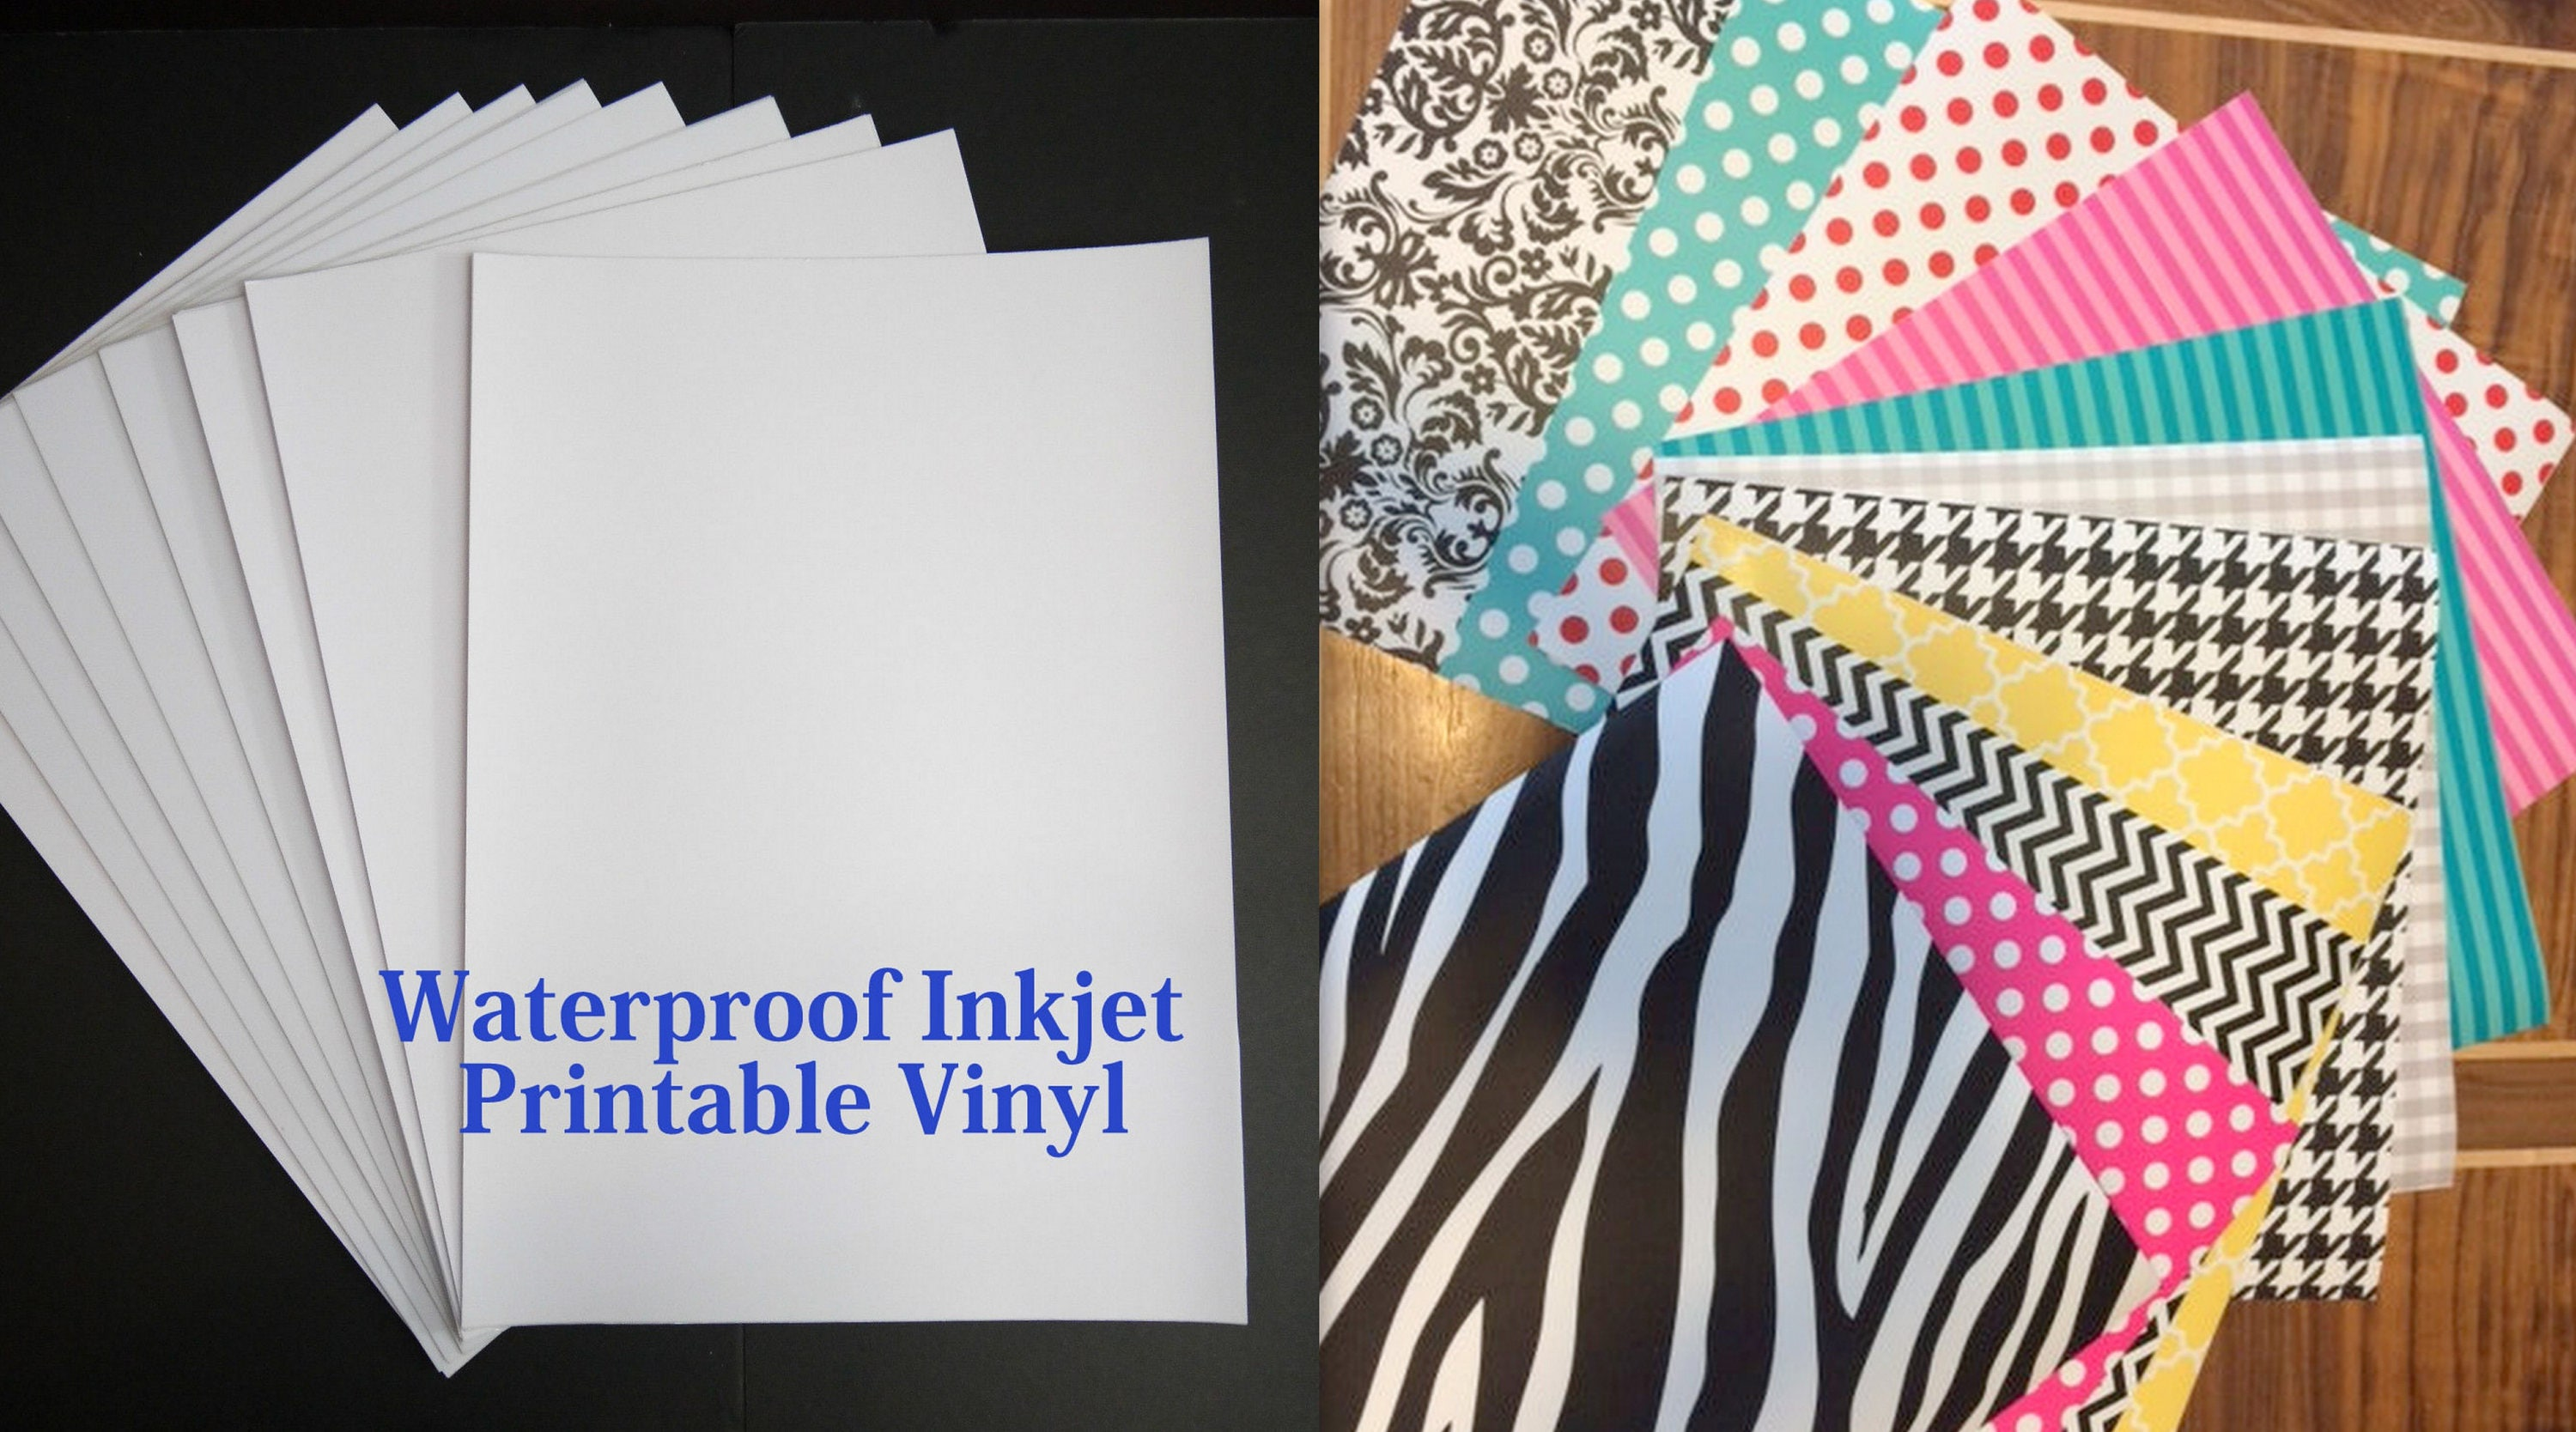 Nifty image with regard to waterproof printable vinyl